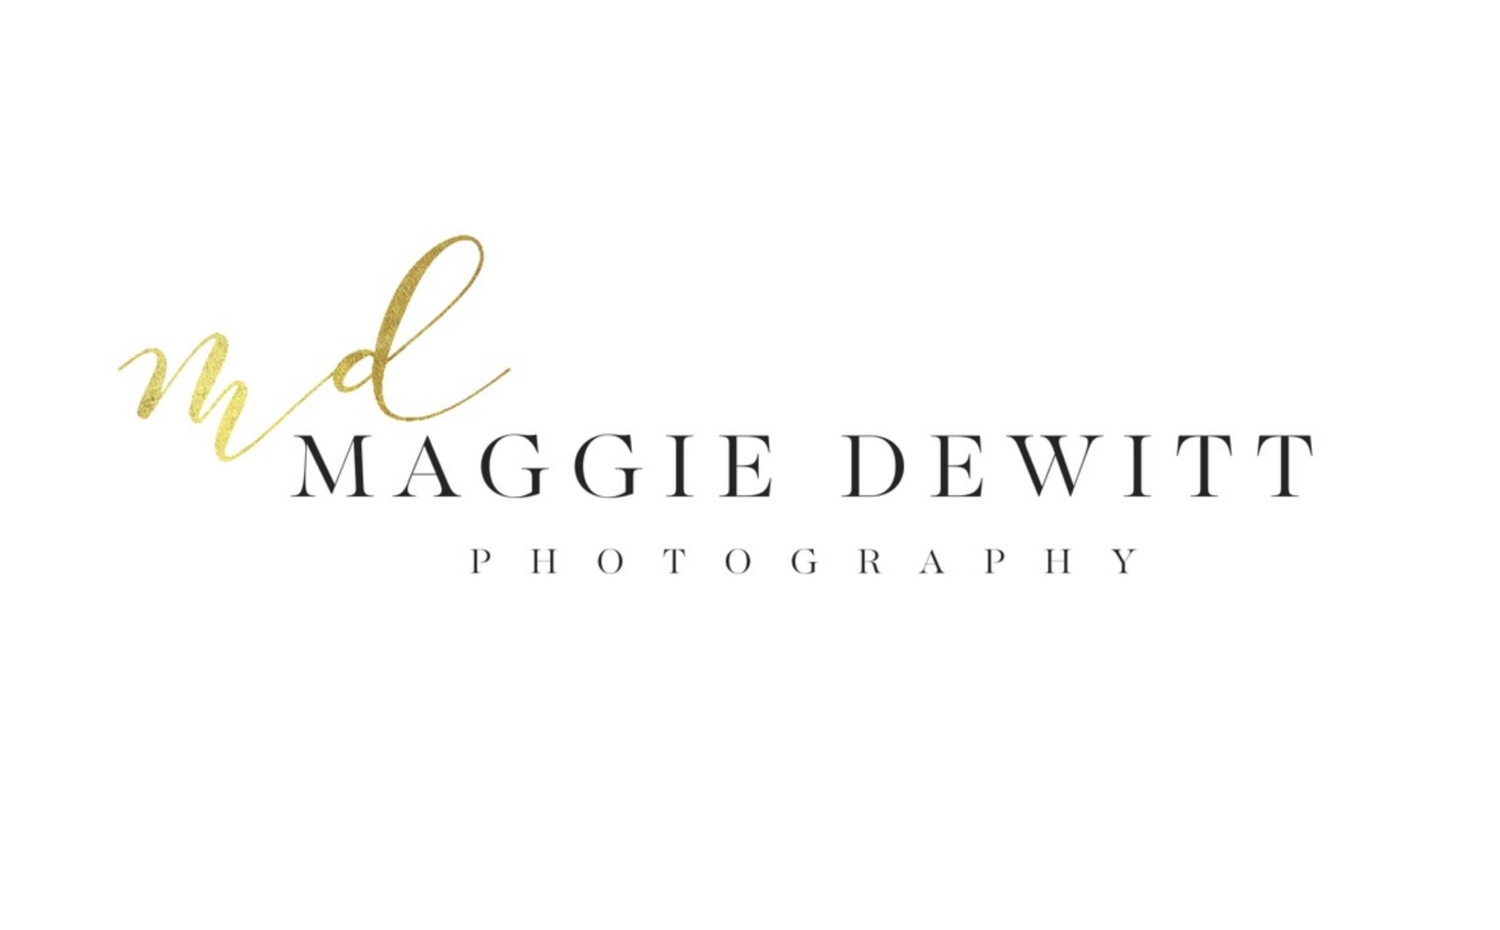 Maggie DeWitt Photography